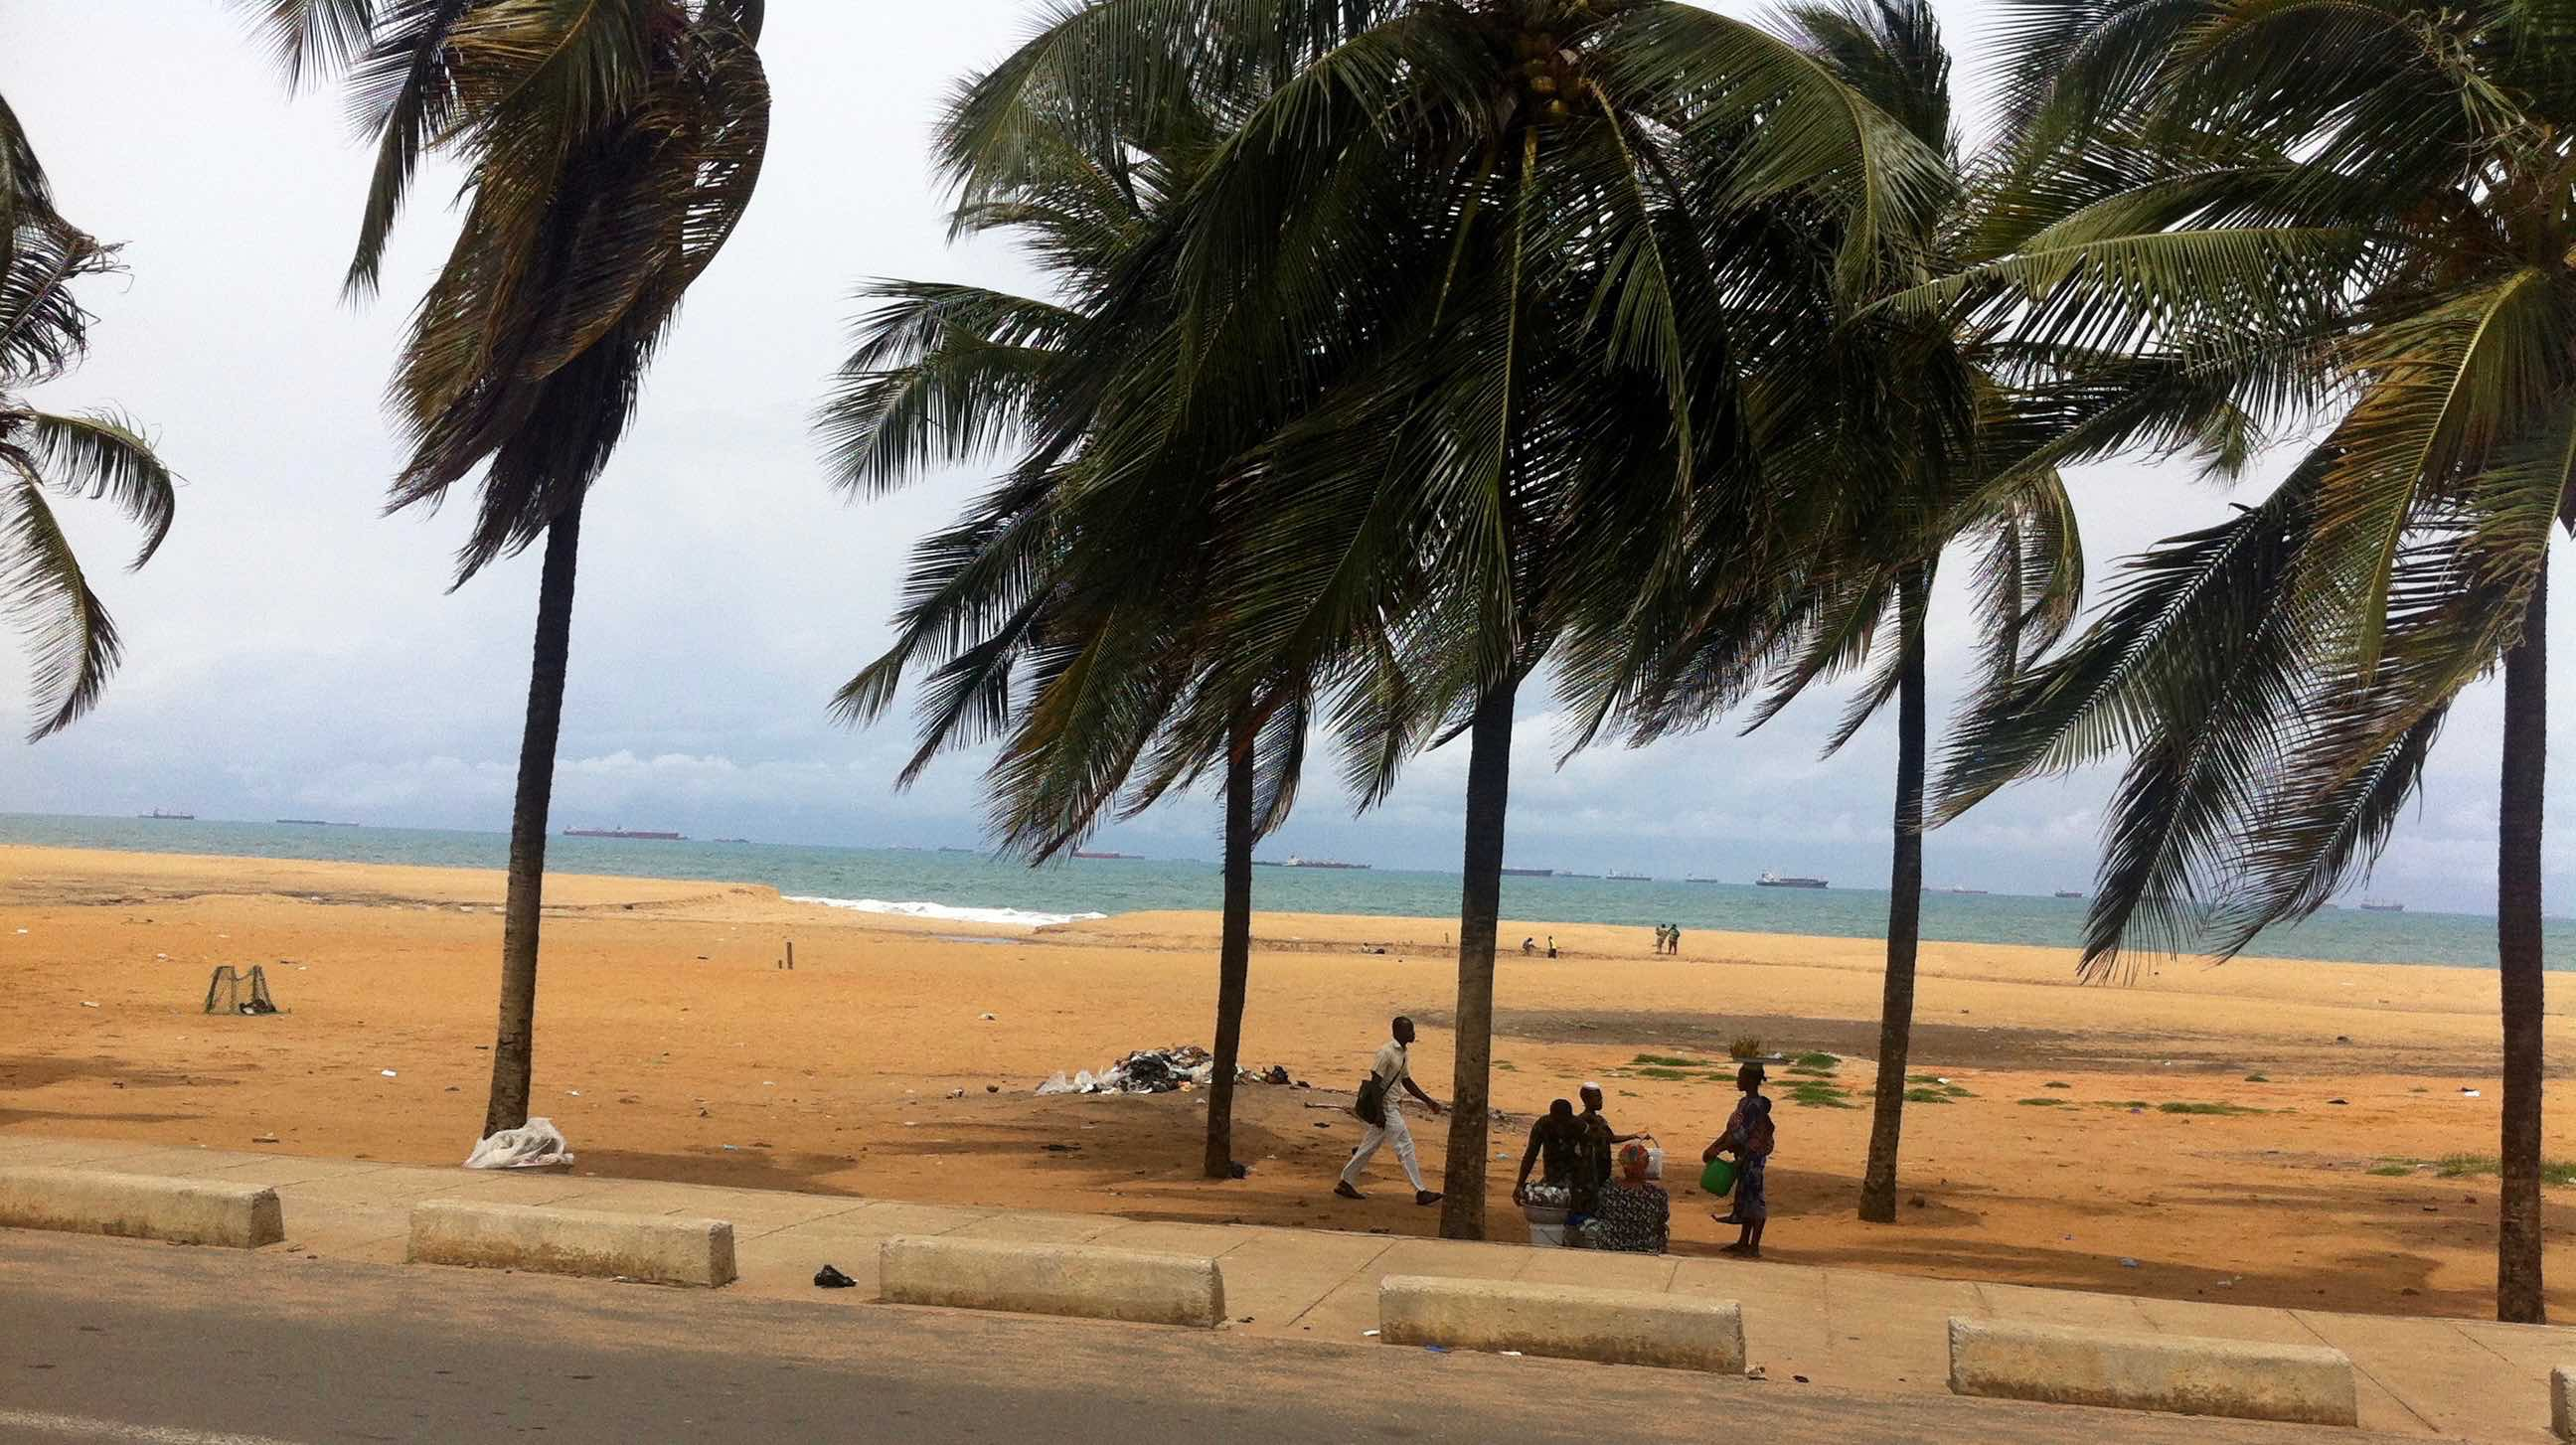 Lome, Maritime, Togo. #JujuFilms